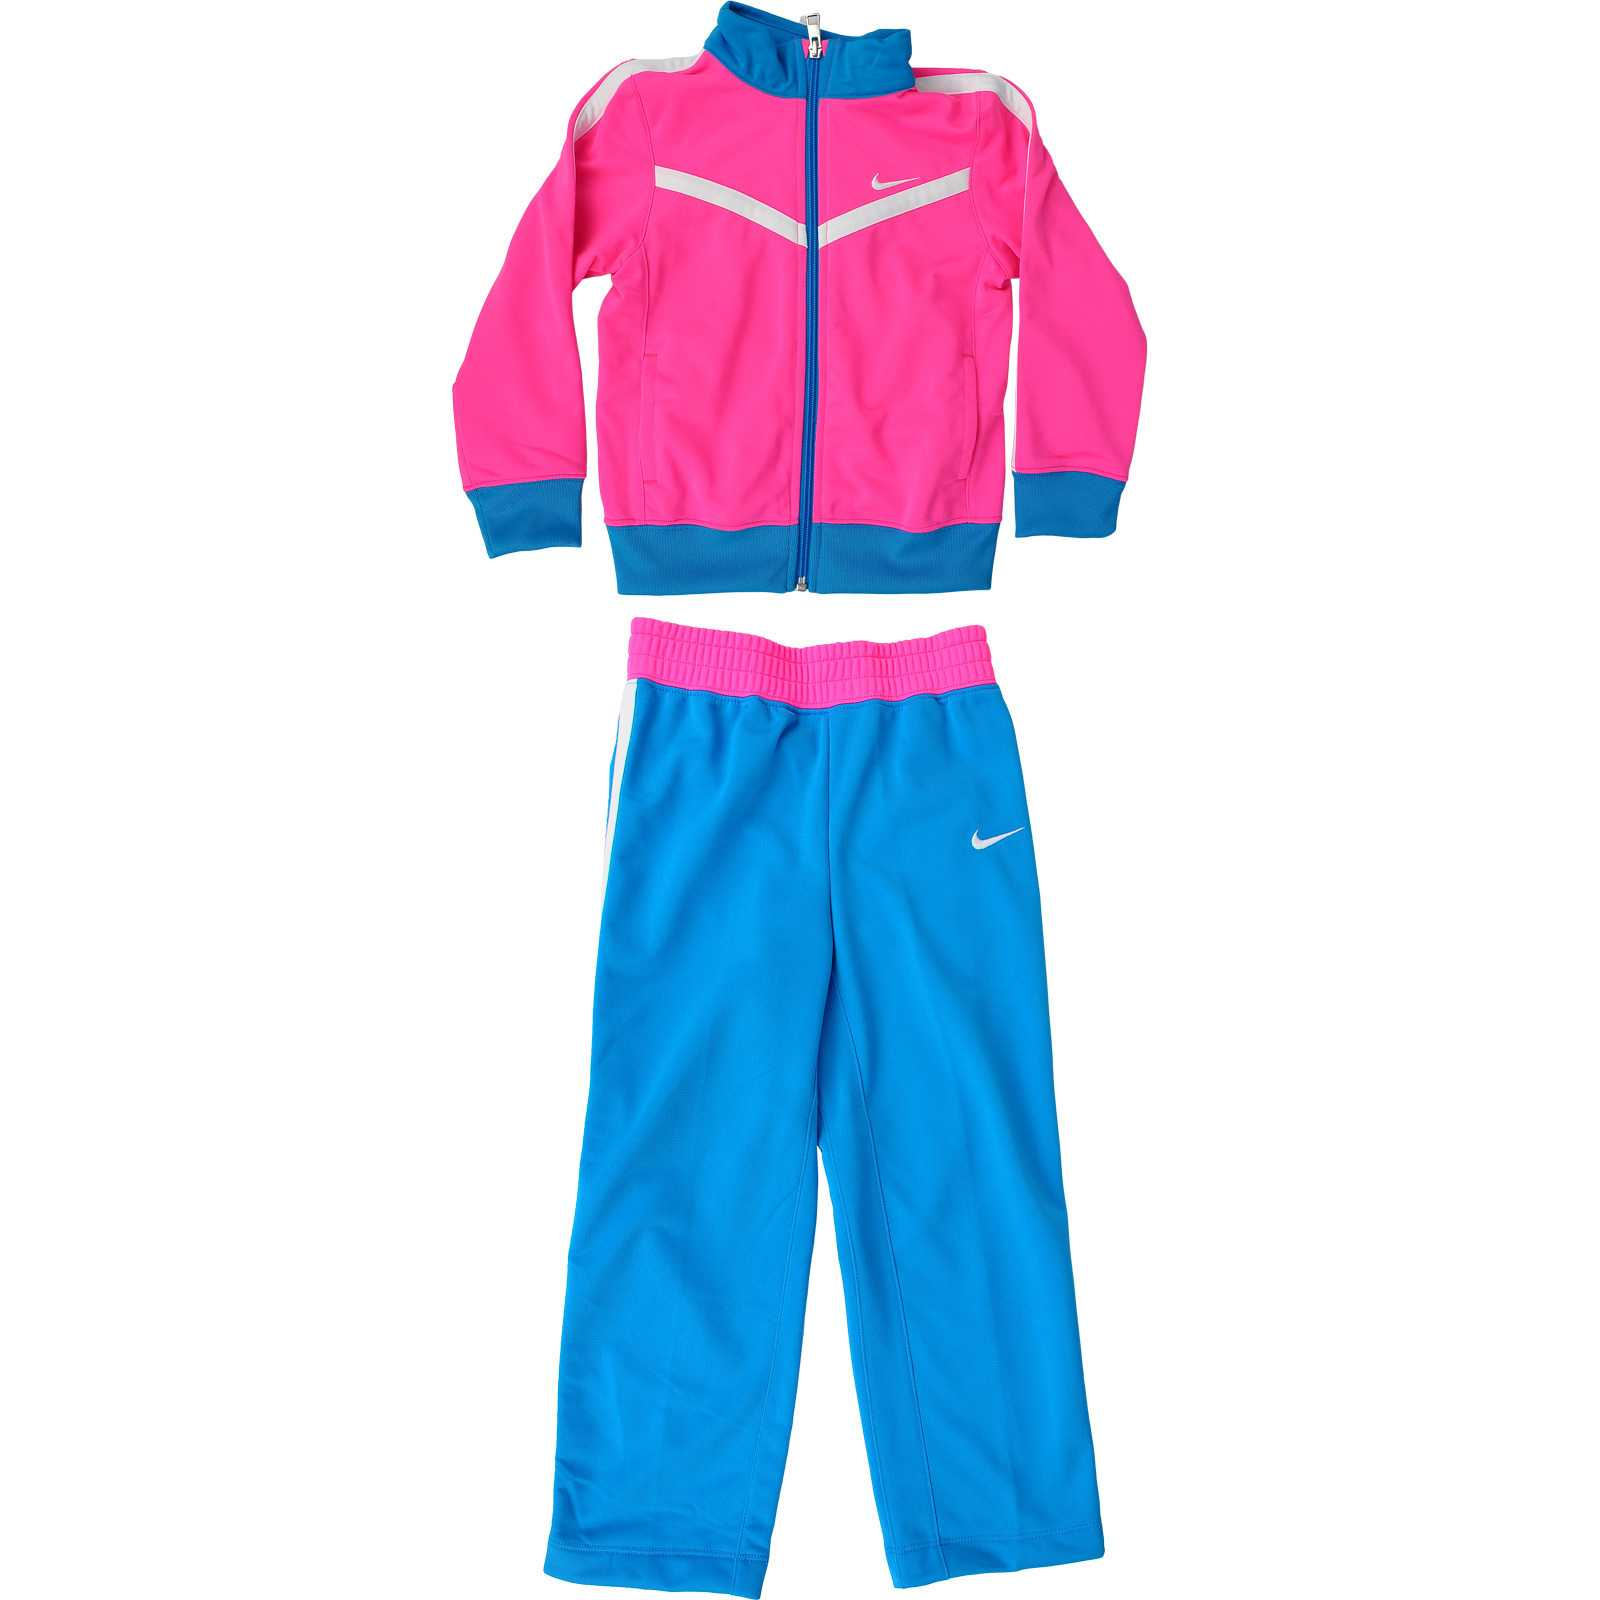 Trening copii Nike T40 Tricot Warm Up Lk Sweatsuit 618176-667